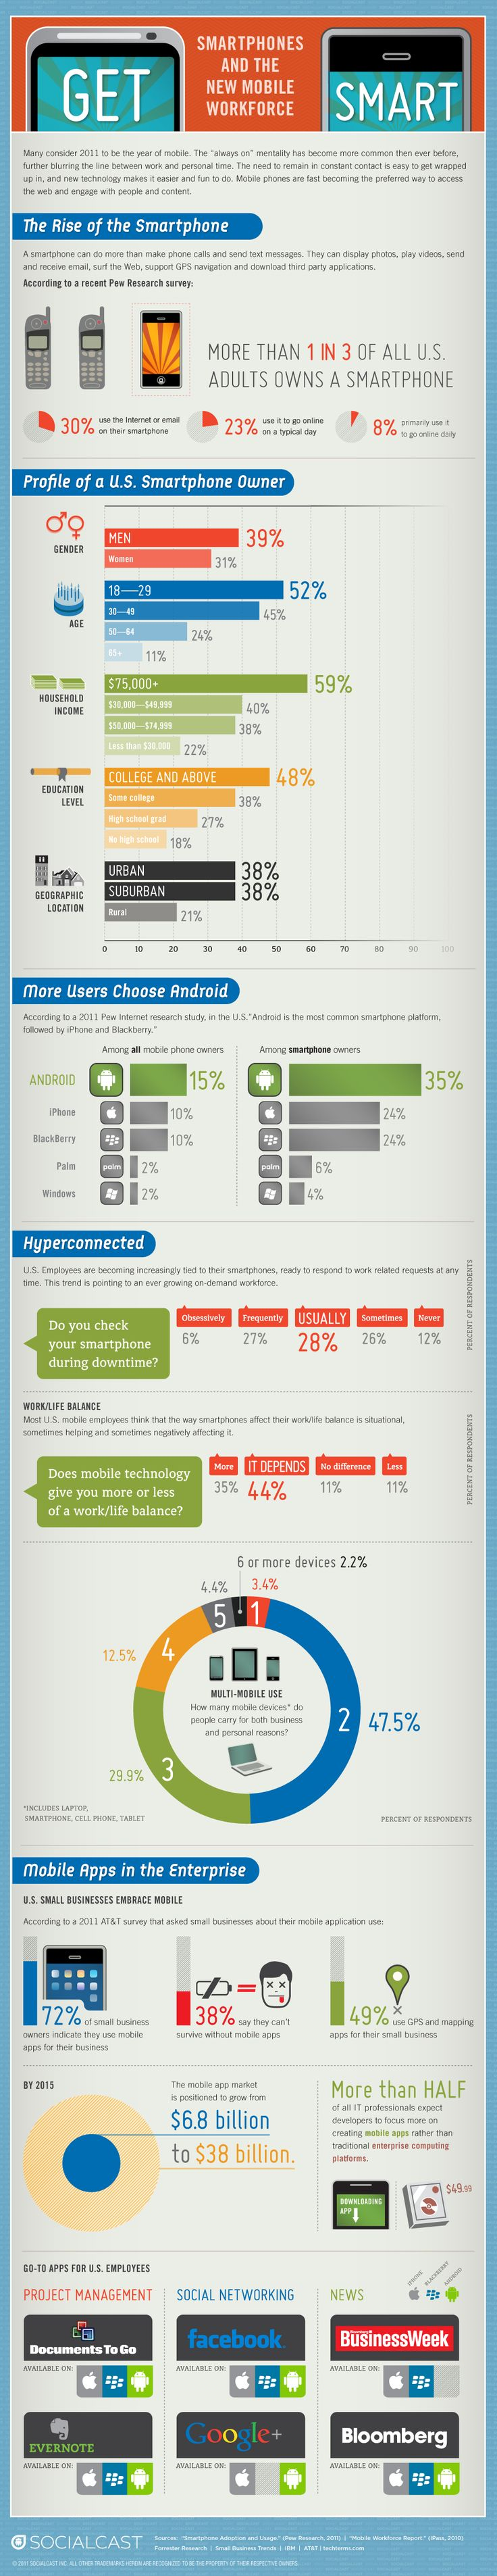 the rise of web applications